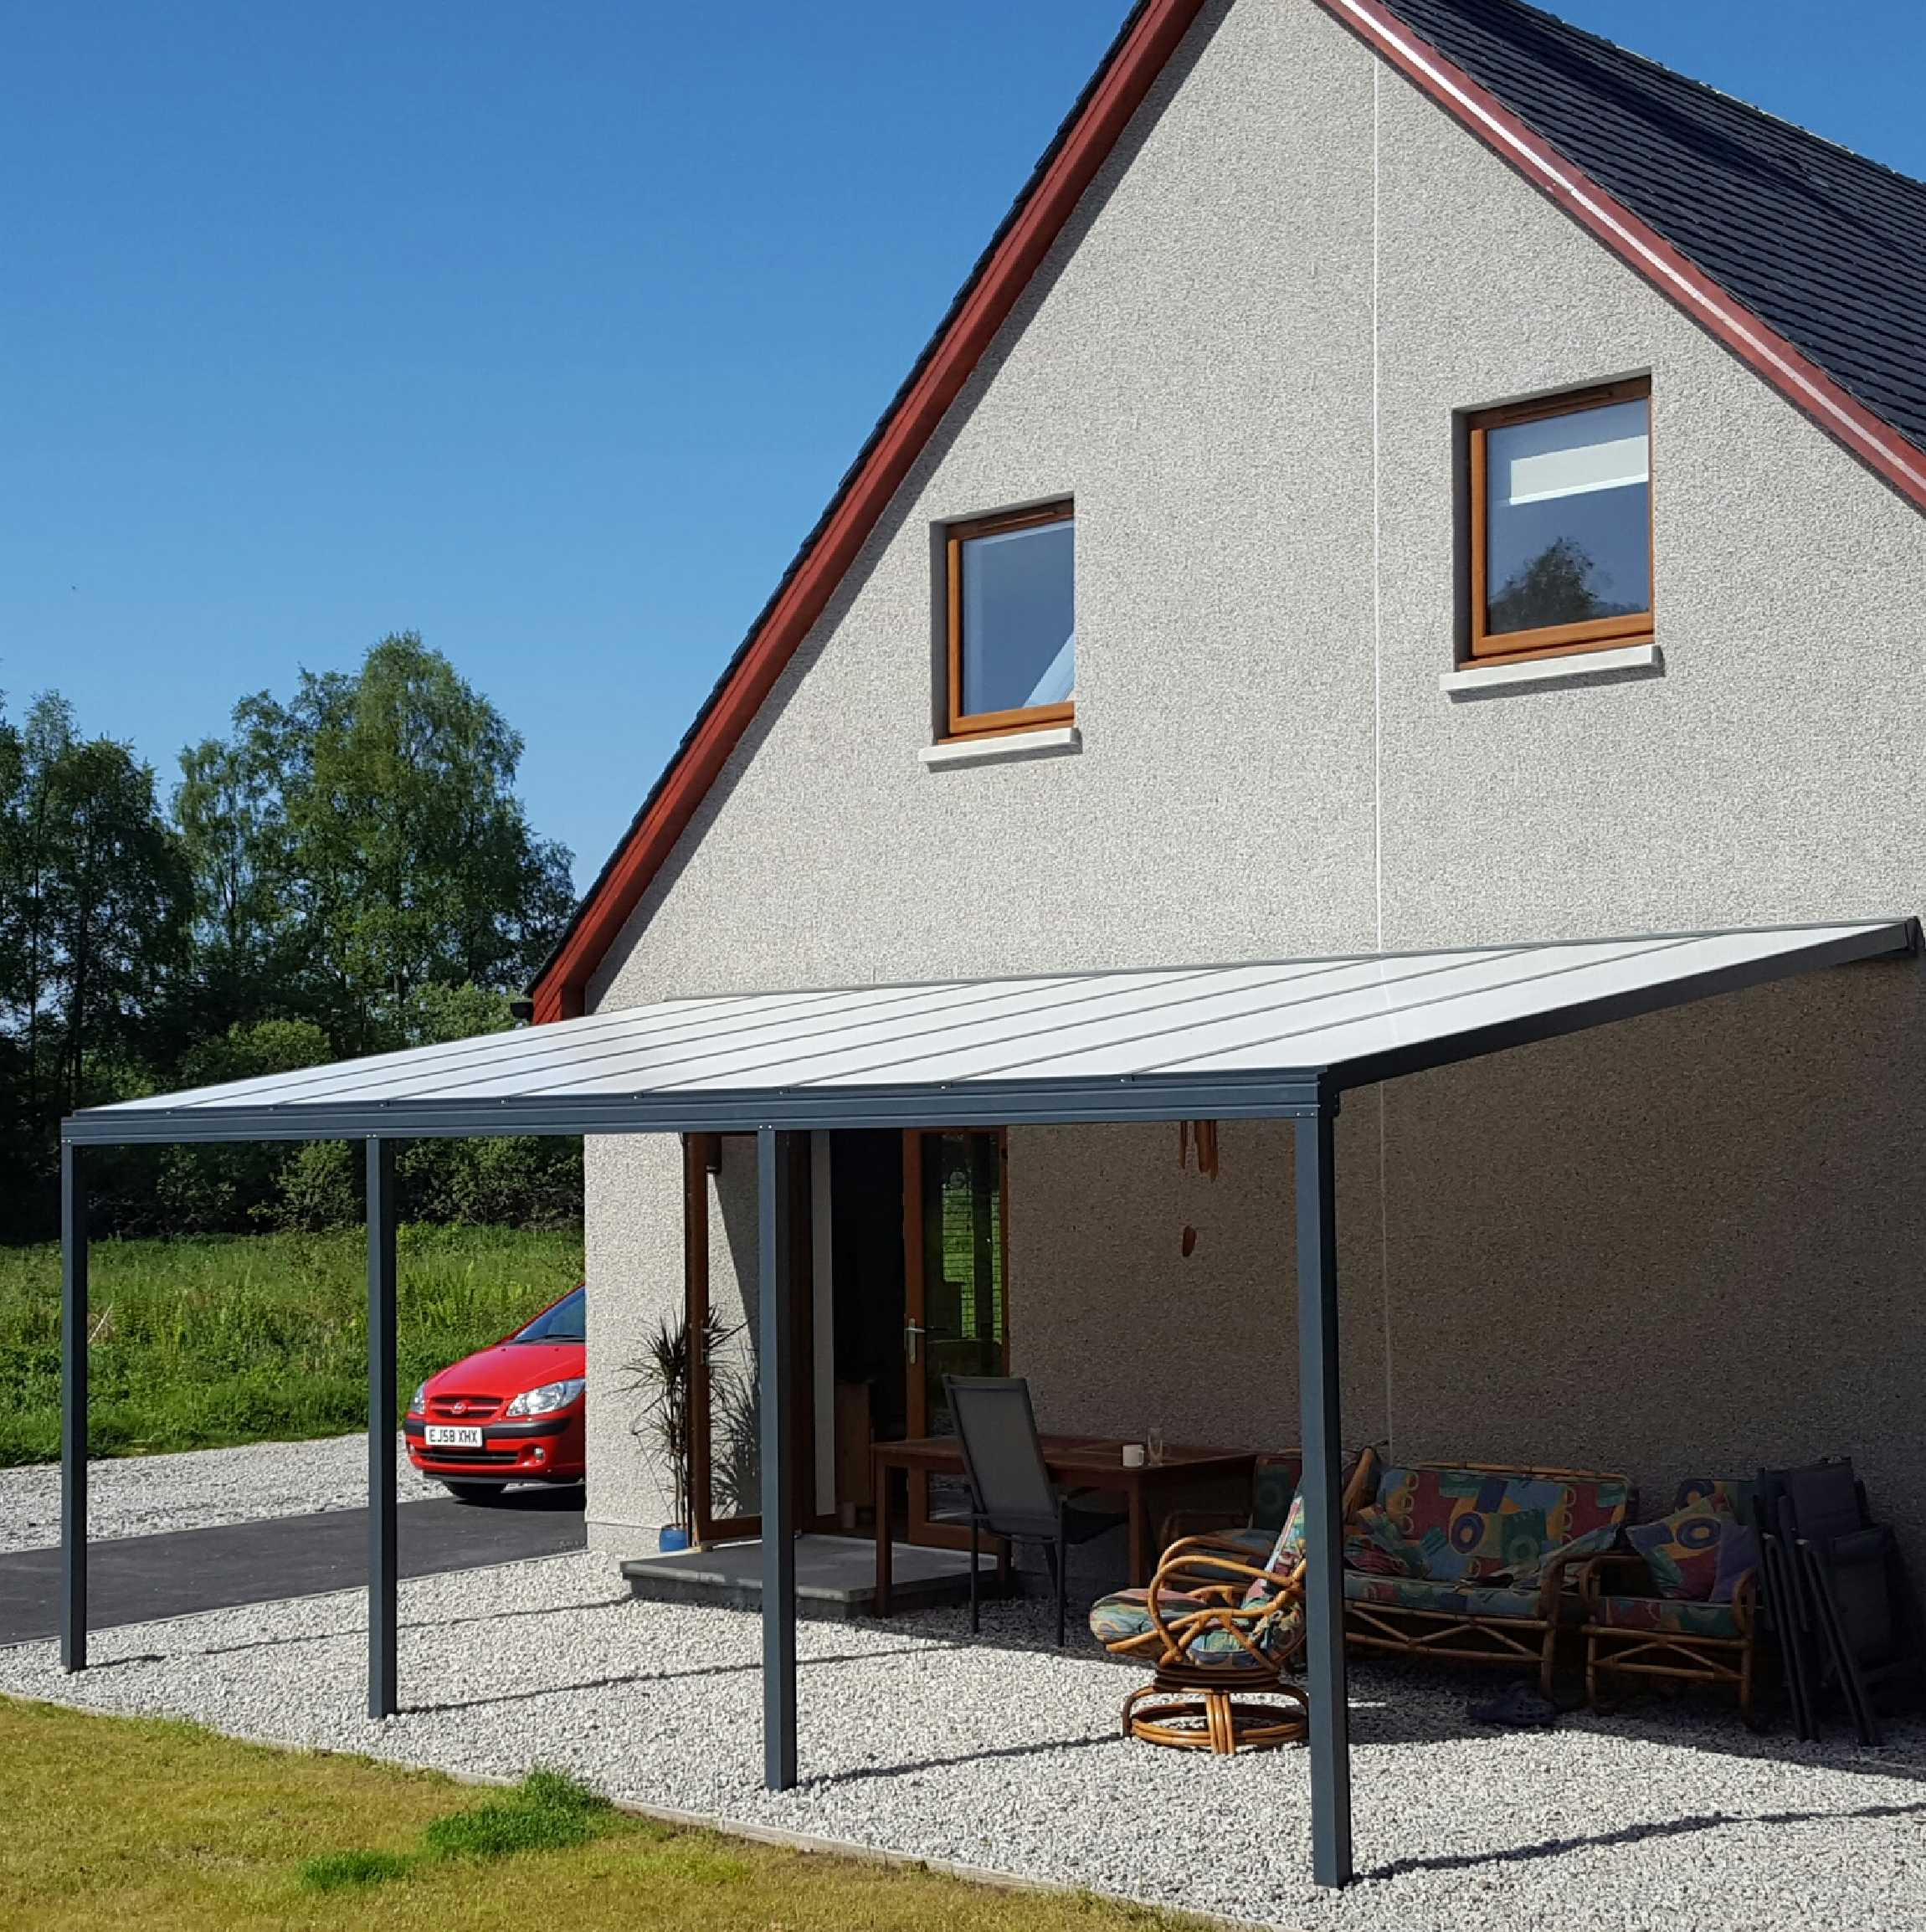 Great selection of Omega Smart Lean-To Canopy, Anthracite Grey, 16mm Polycarbonate Glazing - 7.0m (W) x 4.5m (P), (4) Supporting Posts